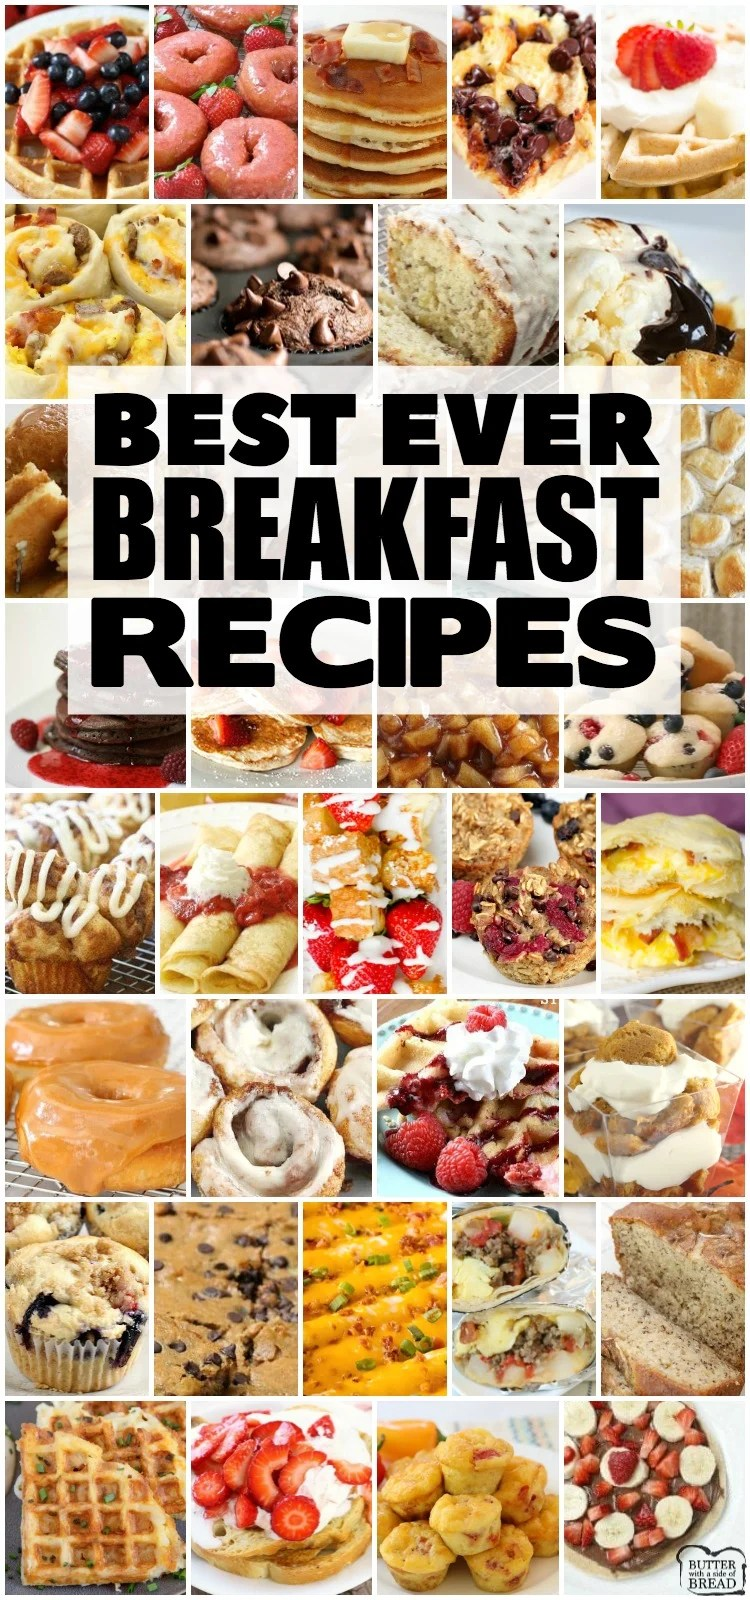 Best Breakfast recipes for anyone who loves breakfast foods! Wide variety of breakfast choices- sweet, savory, breakfast for a crowd or breakfast for two! Pancakes, bacon, breakfast casseroles, muffins, donuts- the most updated, comprehensive collection of breakfast recipes ever! #breakfast #pancakes #bacon #eggs #breakfasts #recipes from BUTTER WITH A SIDE OF BREAD